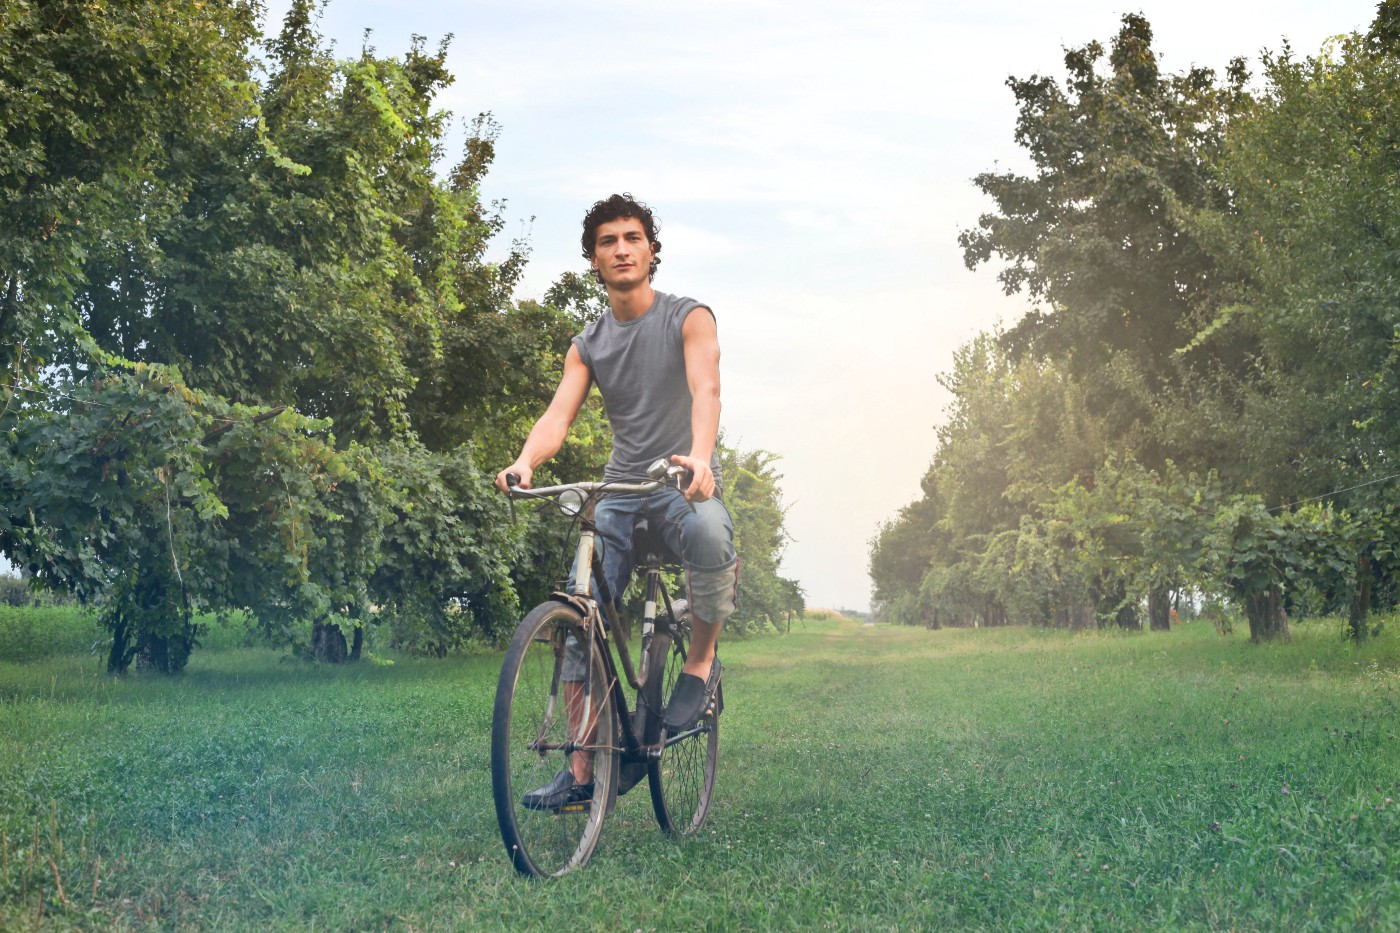 On a grassy path, a man rides his bicycle.